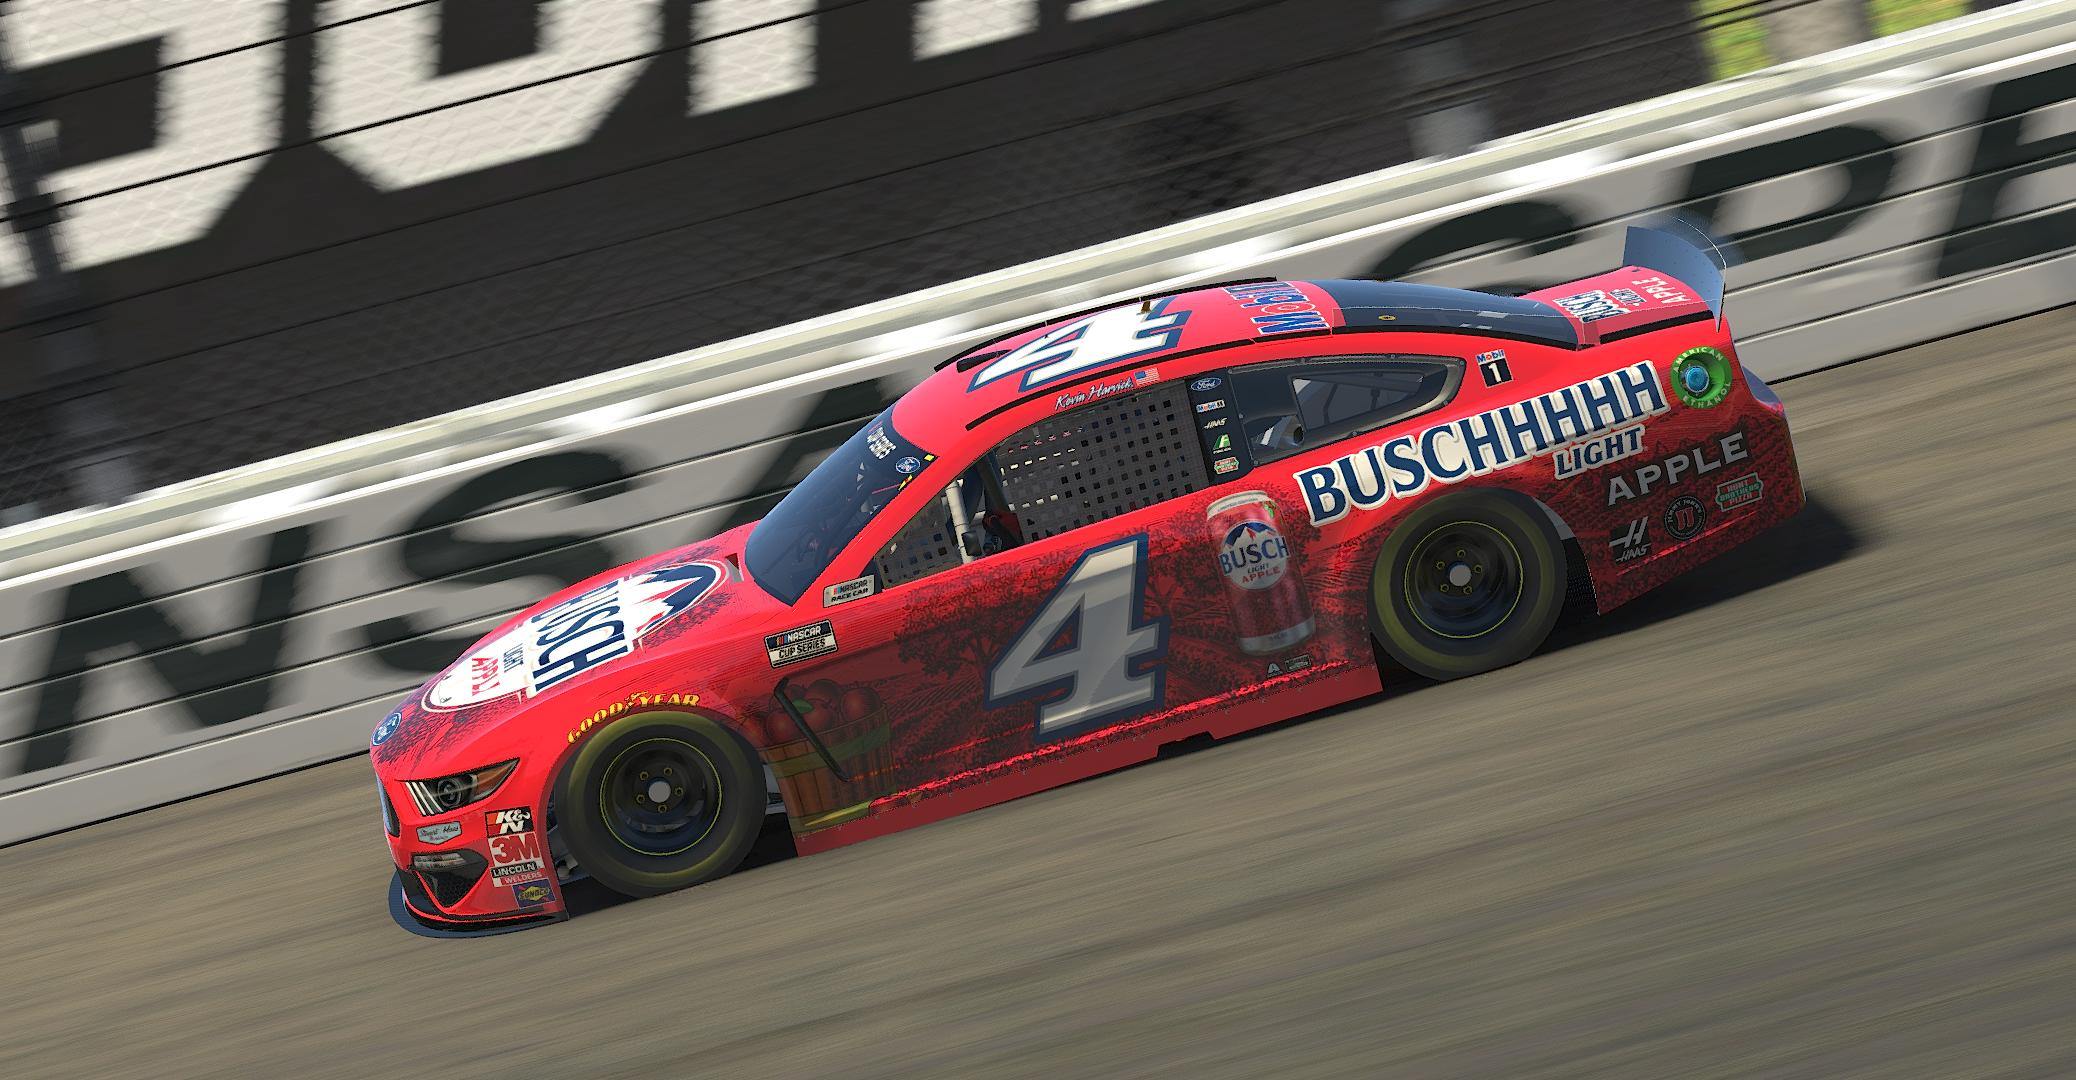 Preview of Kevin Harvick Busch Light Apple - Custom Numbers by Ryan Hines